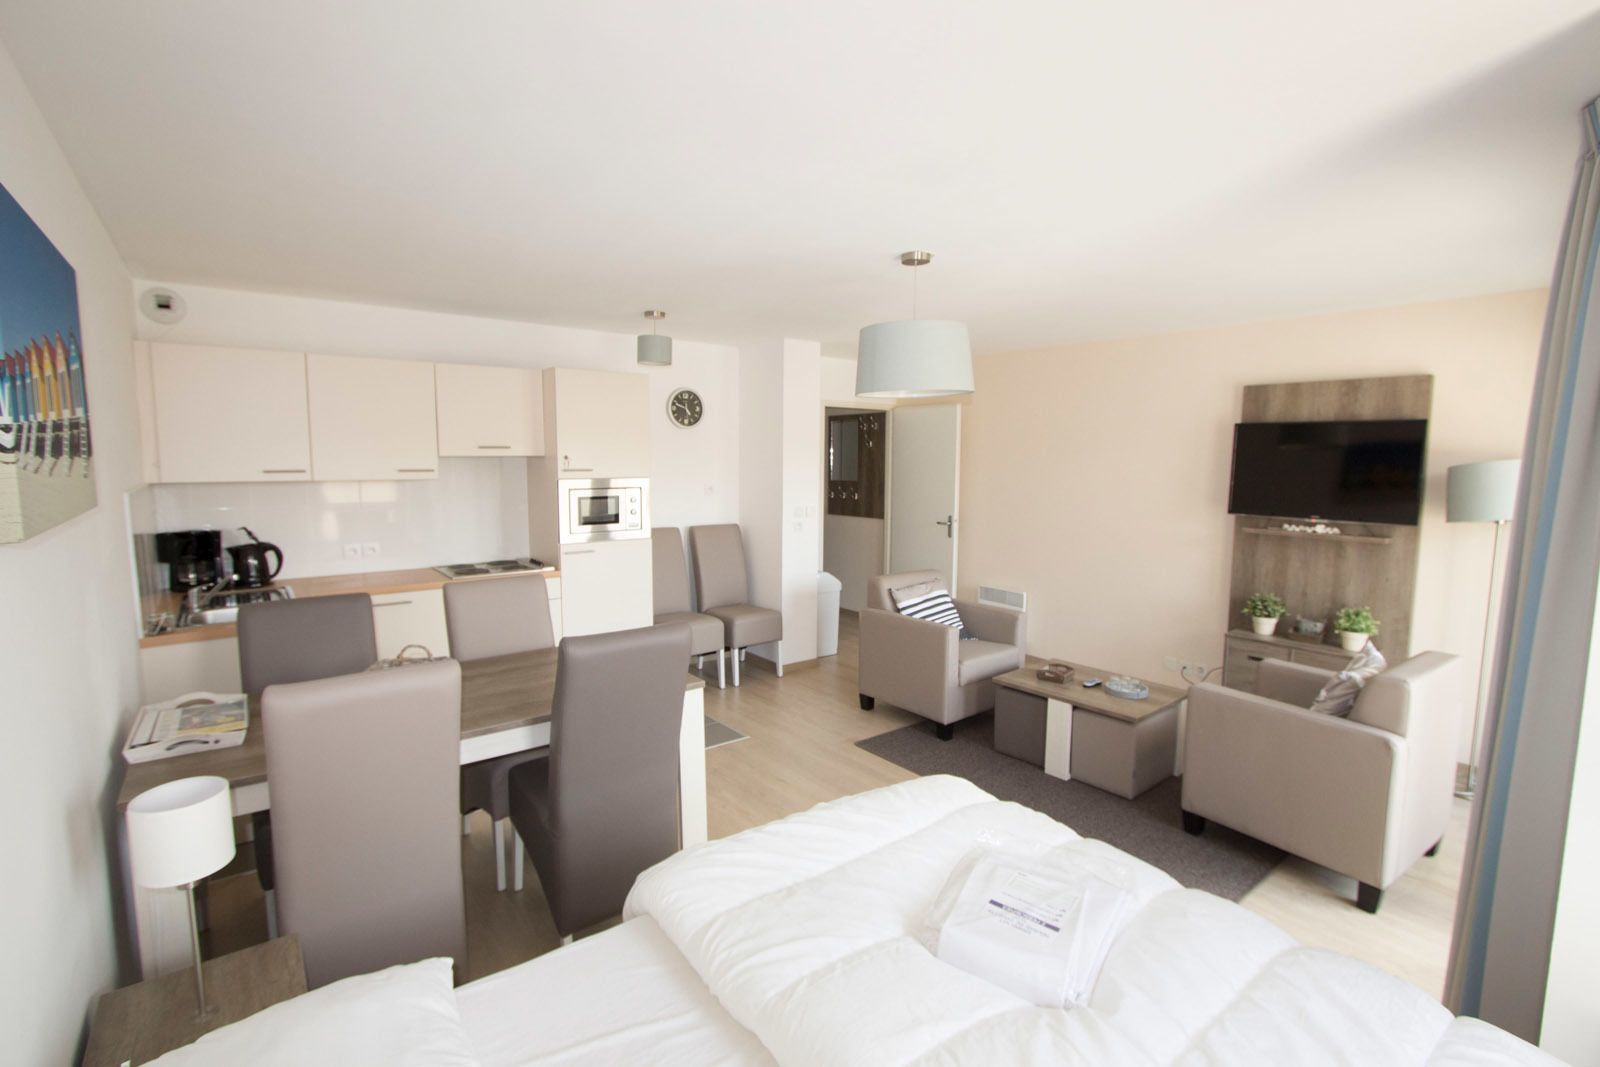 Holiday Suite for 2 people, adapted to people with a disability